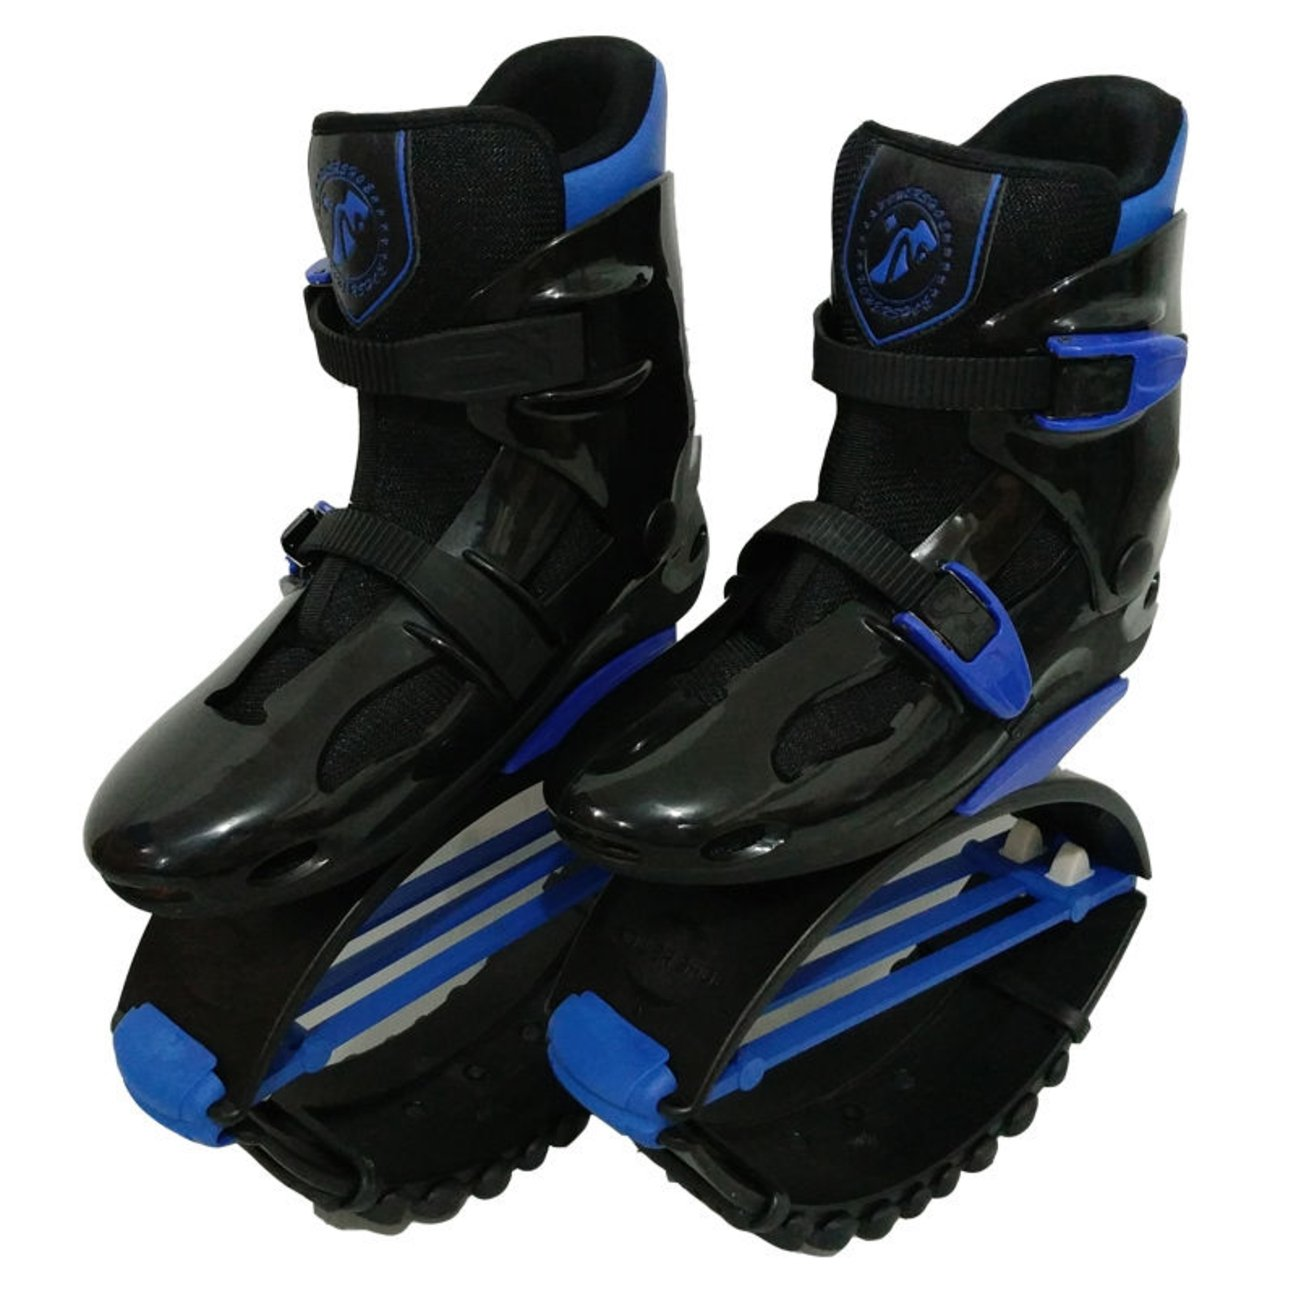 ZCOINS Unisex Kids Adults Anti-Gravity Running Boots Fitness Bounce Shoe Jumping Shoes 60-240 LBS (Black Blue, XL (Mens 8-10 for 200-240 lbs))